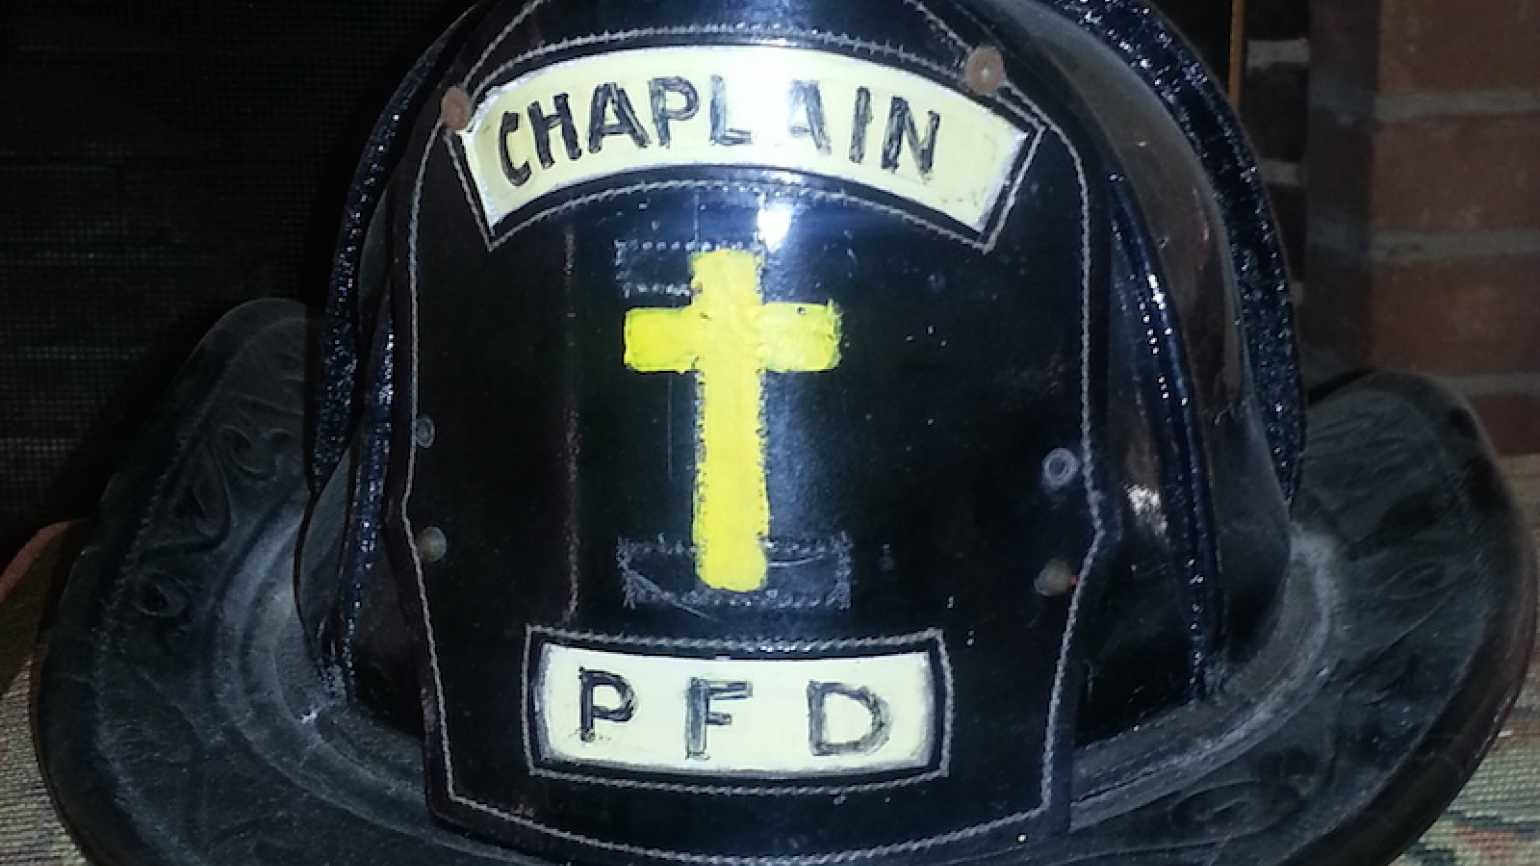 Dr. Norman Vincent Peale's helmet when he was a fire department chaplain